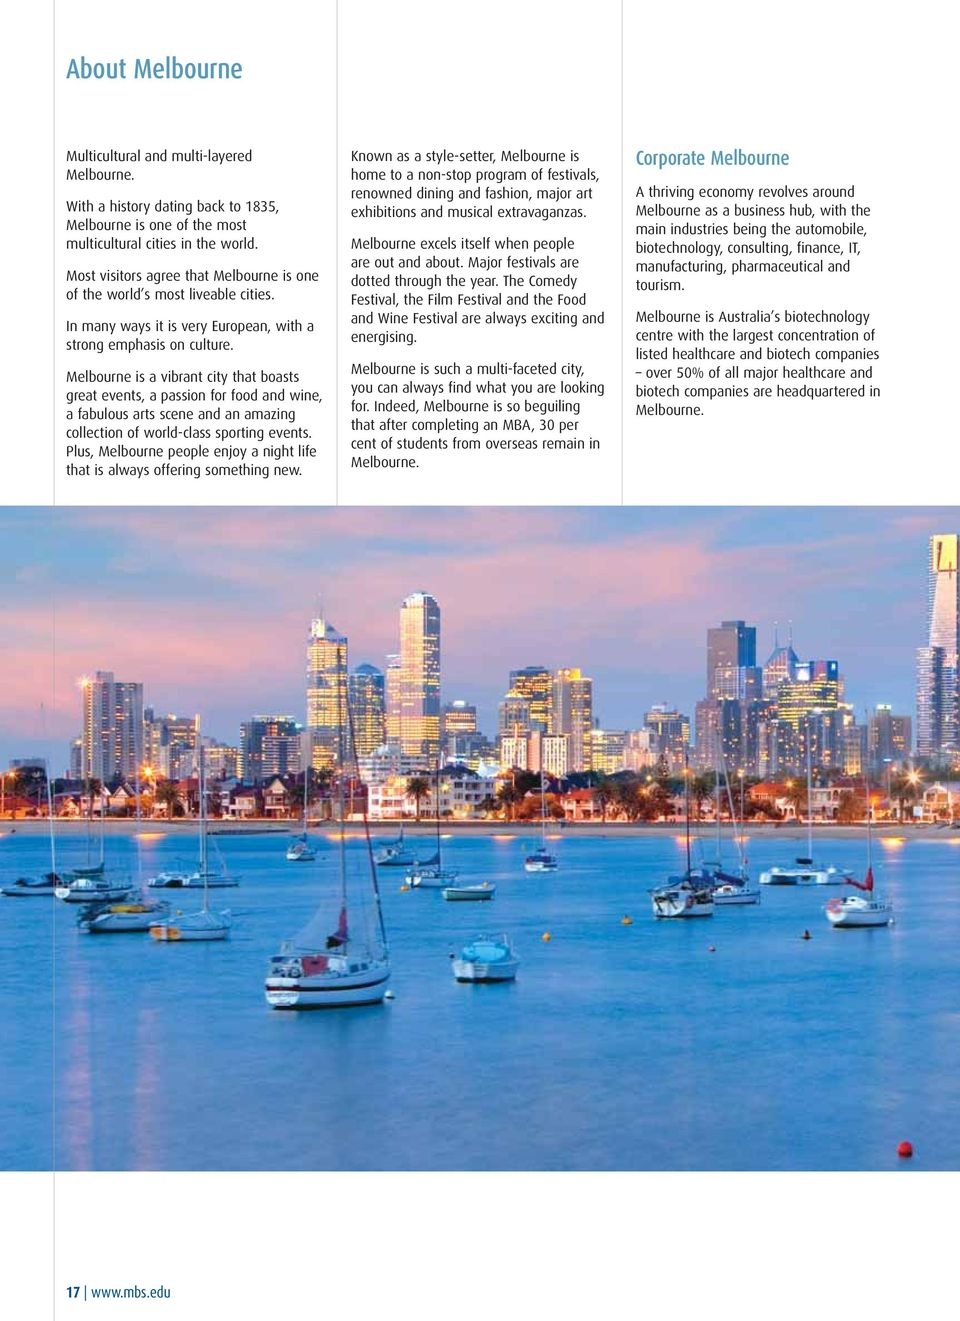 Melbourne is a vibrant city that boasts great events, a passion for food and wine, a fabulous arts scene and an amazing collection of world-class sporting events.